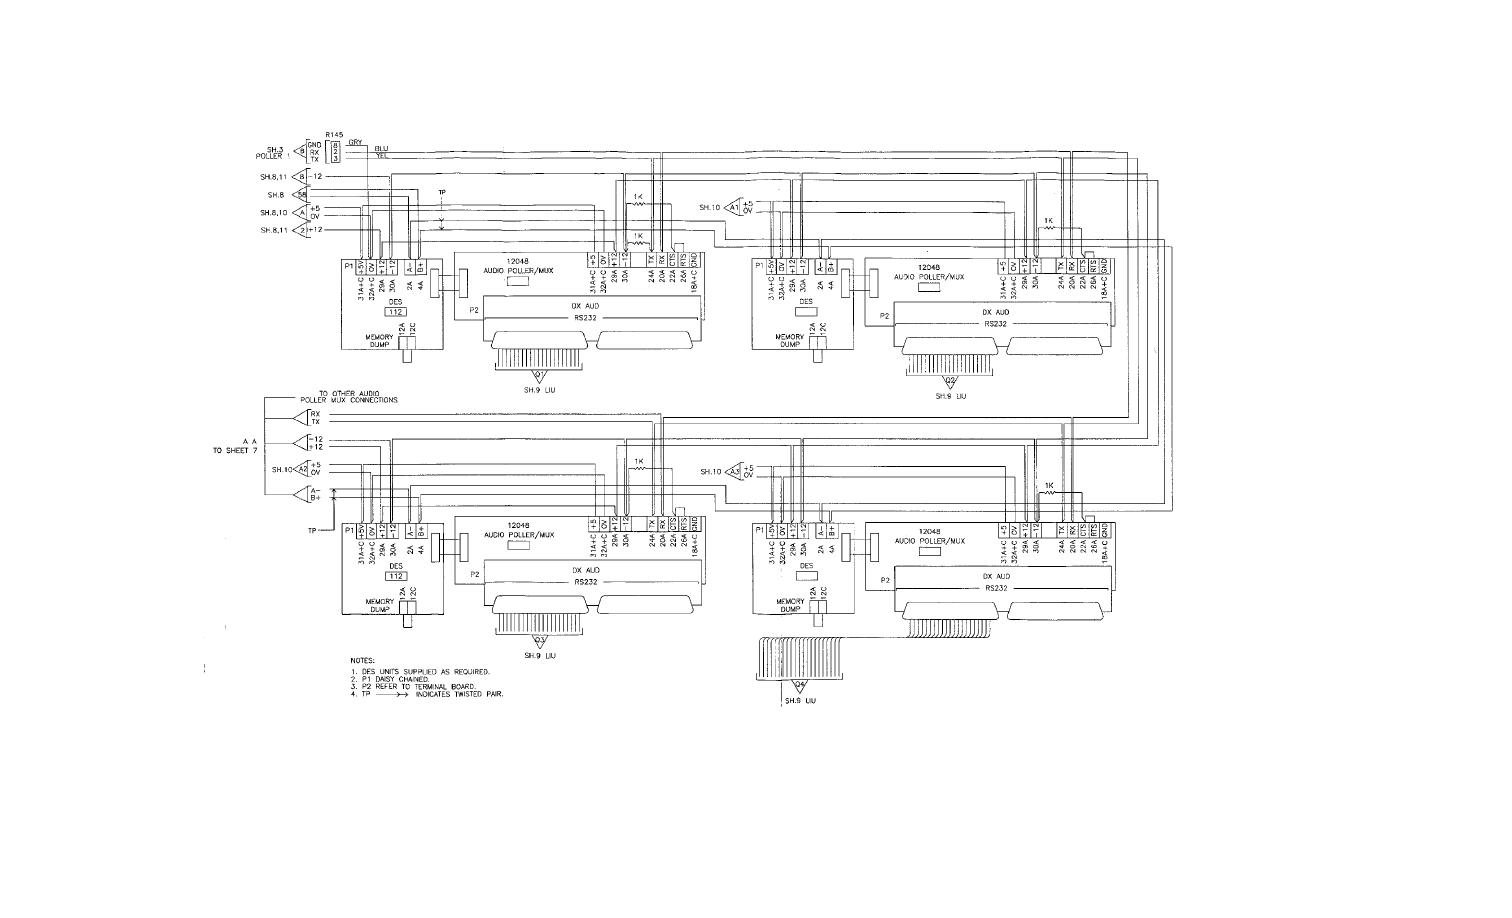 Fo 2 Pmc Functional Wiring Block Diagram Sheet 5 Of 11